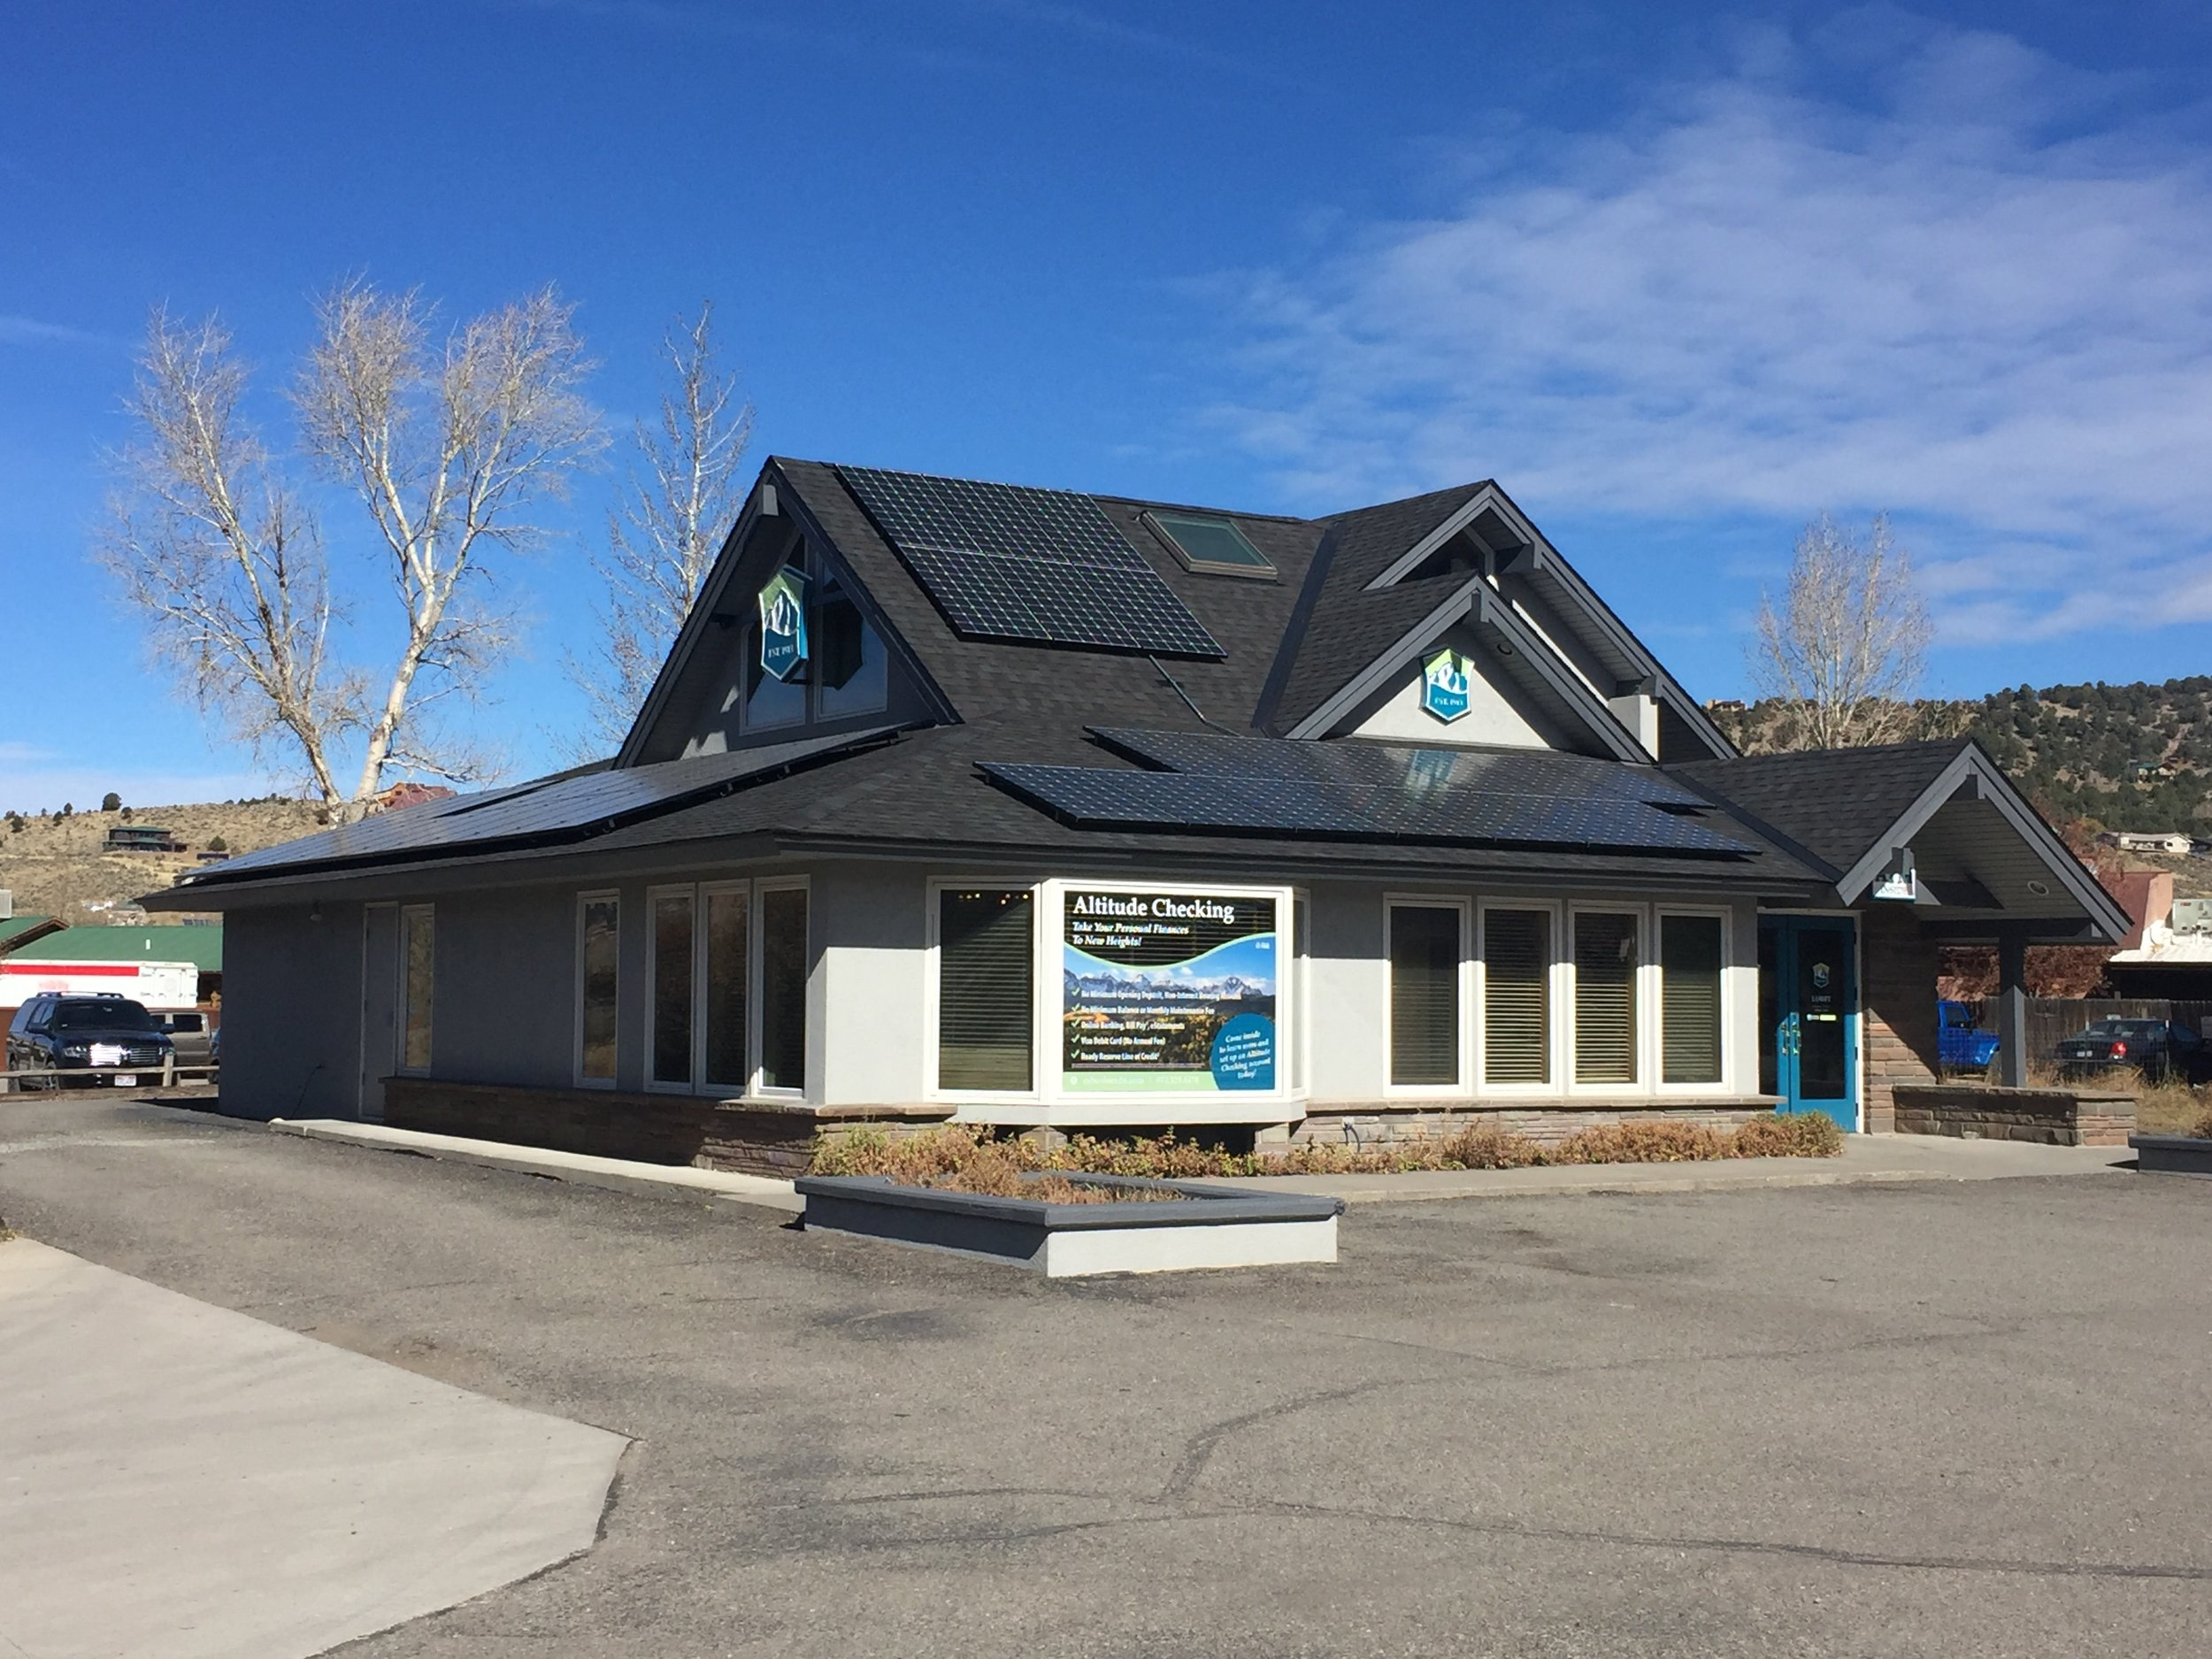 The solar power system alternative power enterprises installed for Citizen's State Bank in Ridgway Colorado